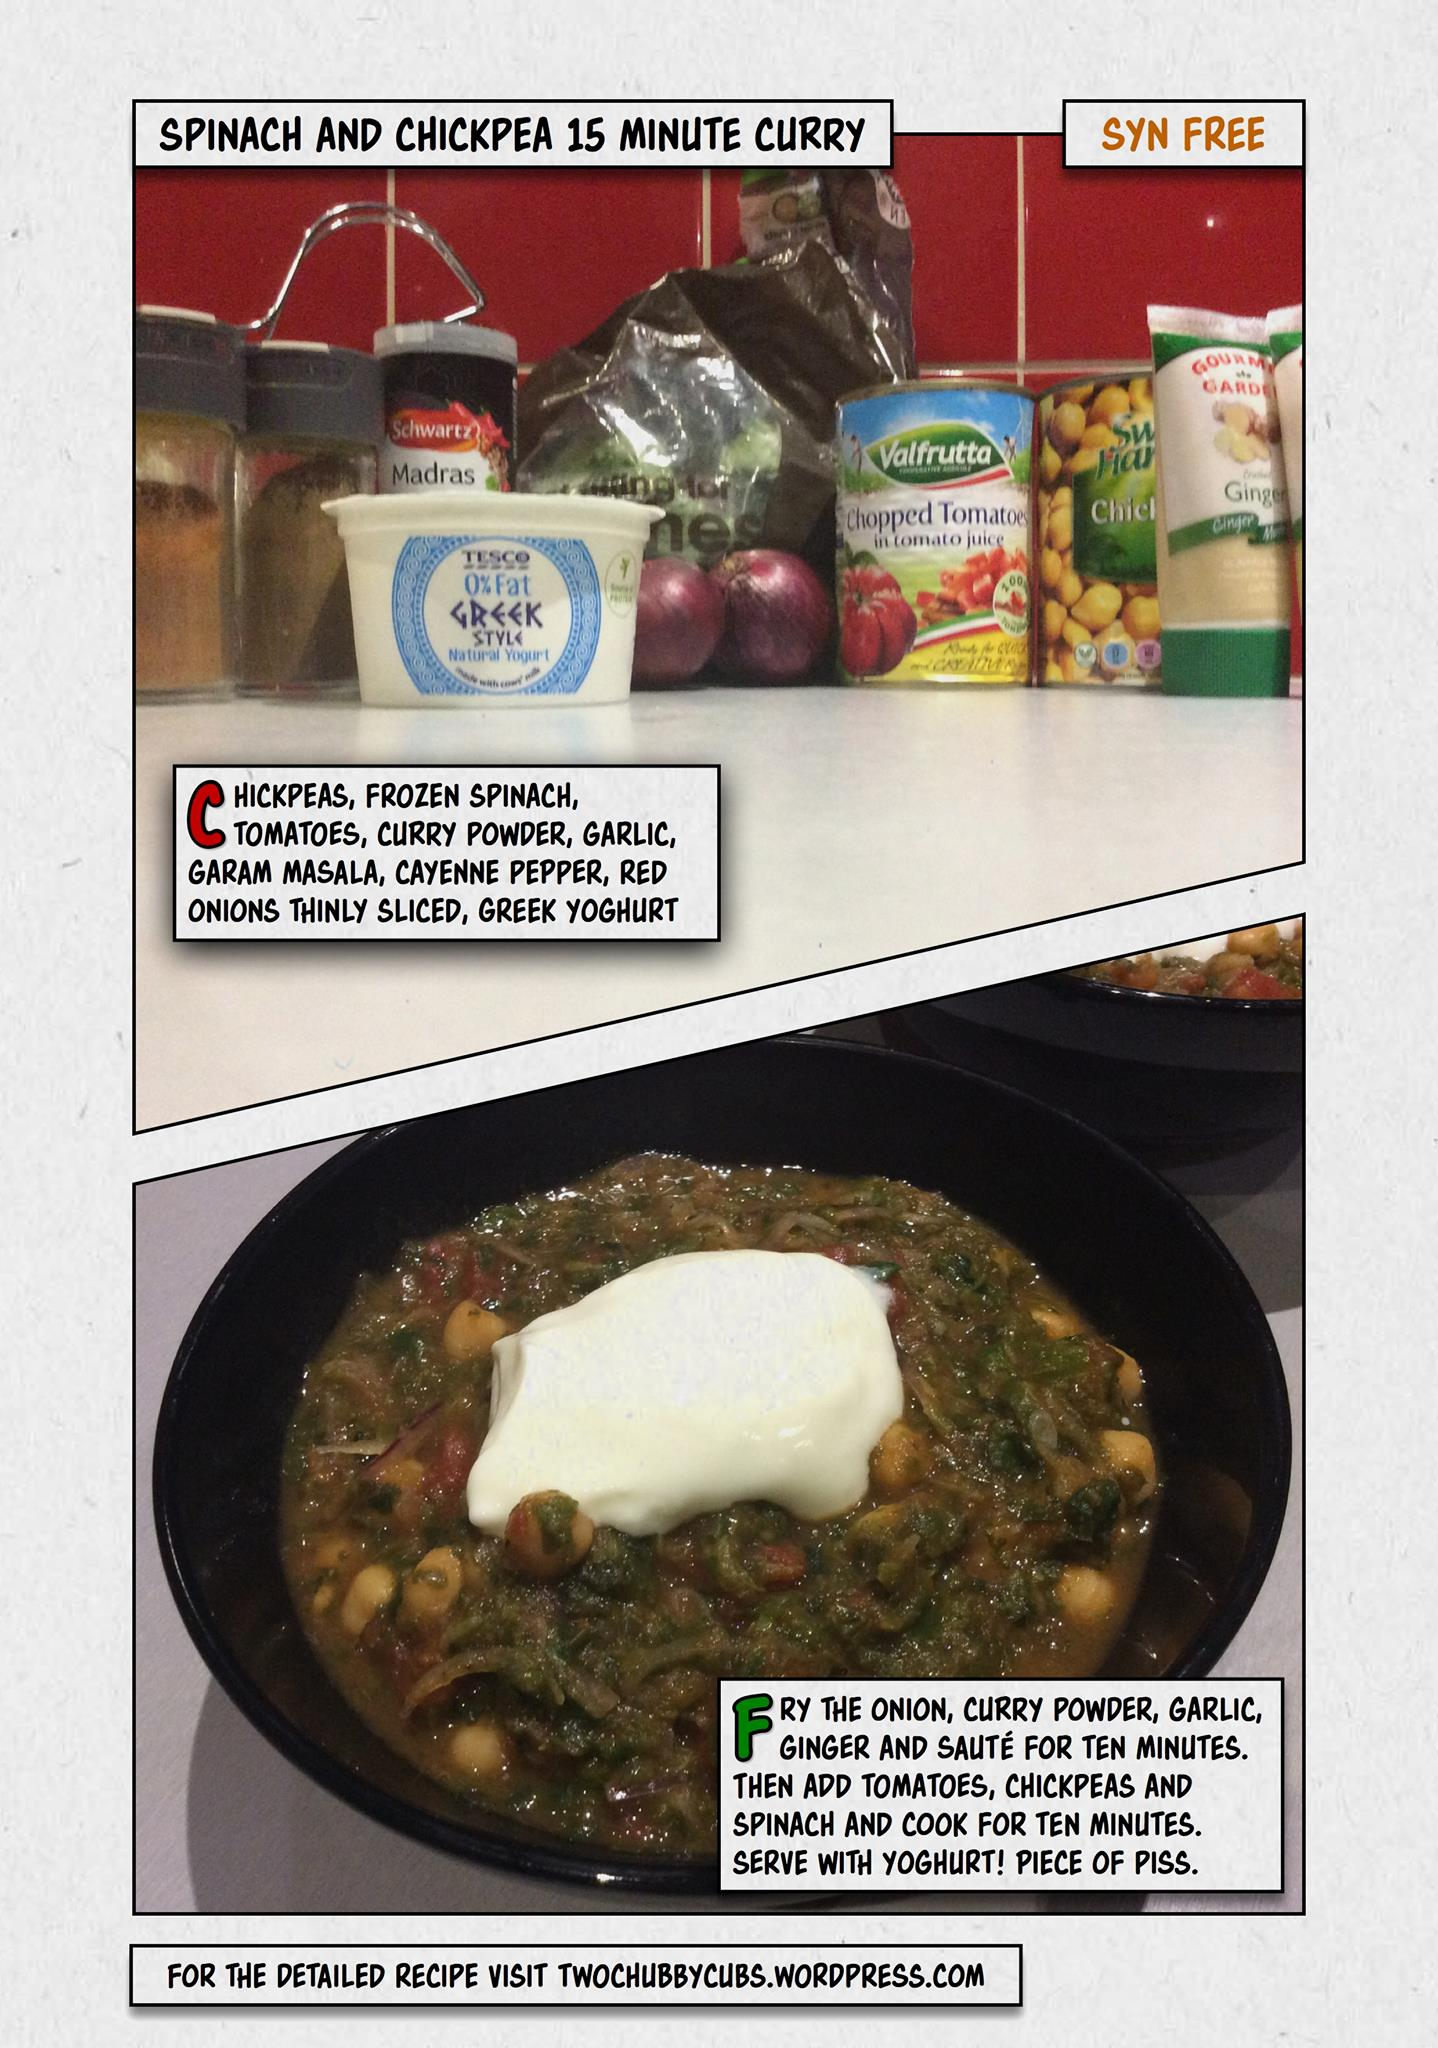 Syn Free Spinach And Chickpea Curry